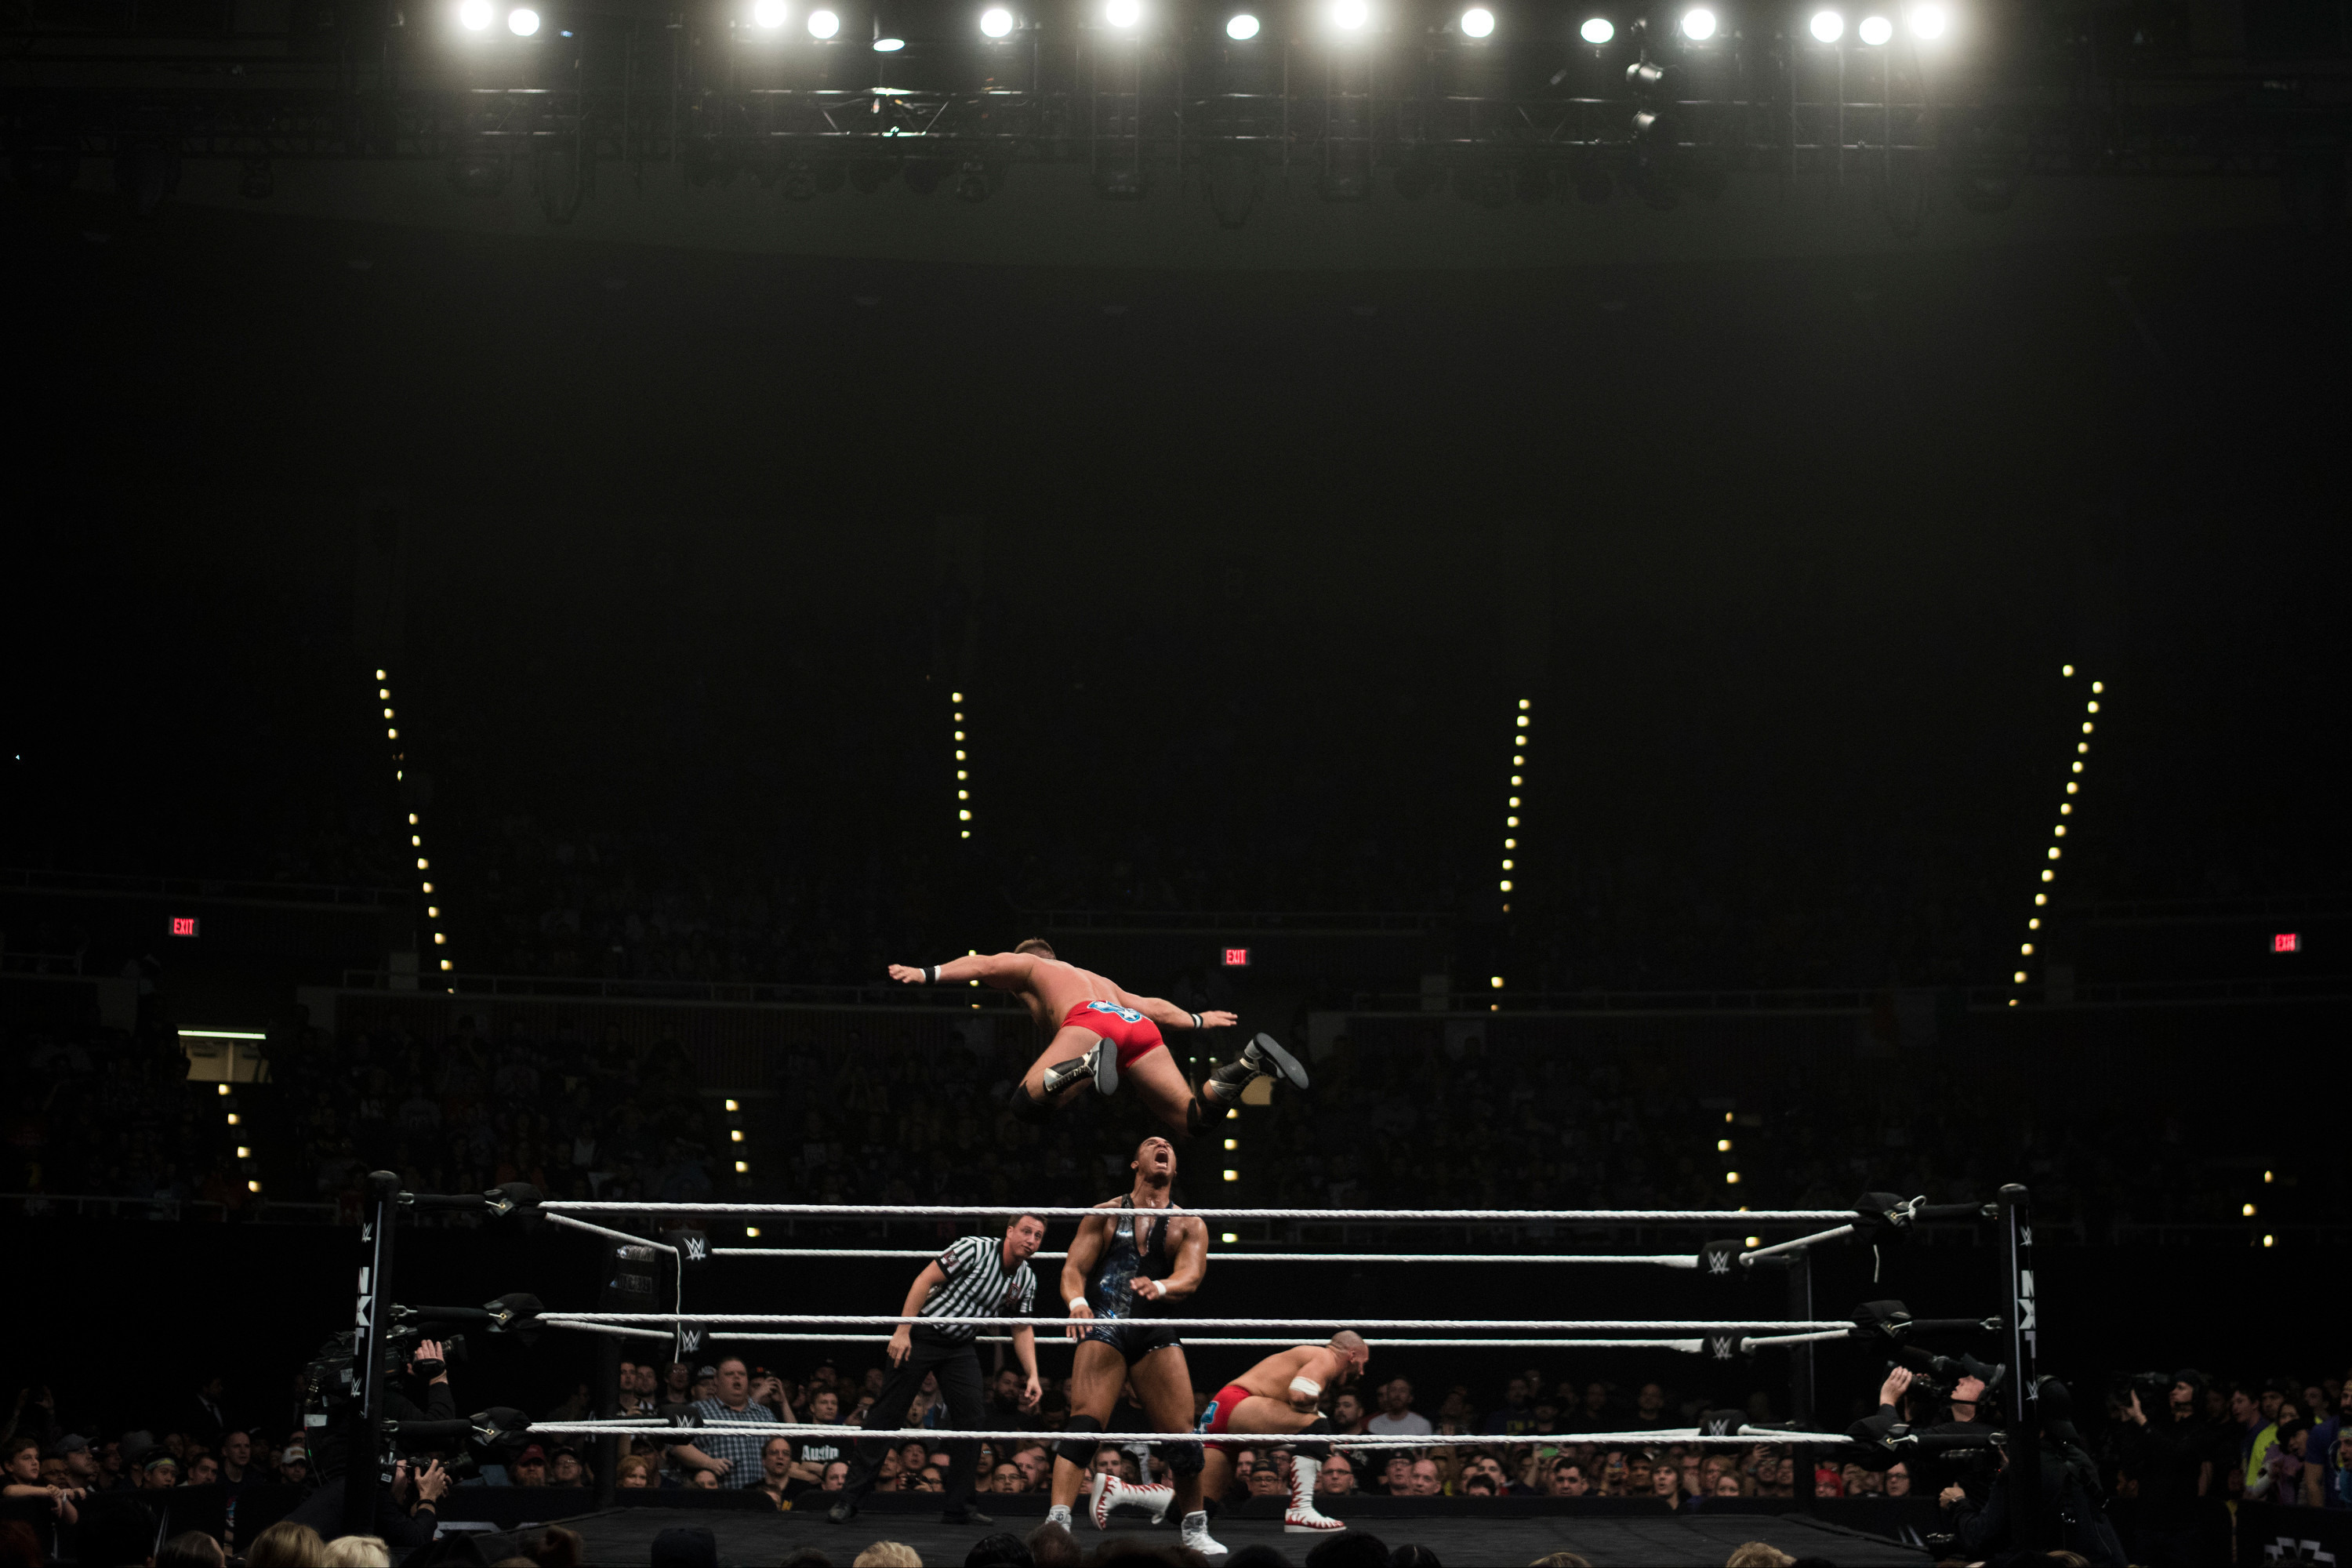 Wwe announces 2q14 earnings wwe network subscriptions youtube - Nxt Has Become A Wildly Popular Feeder League For Wwe Photo By Cooper Neill